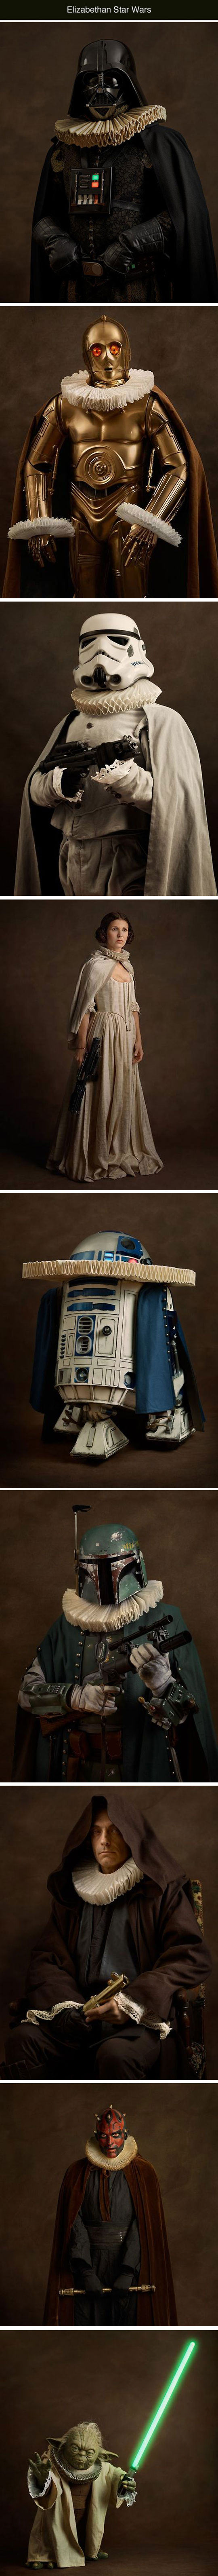 Star Wars From Another Perspective